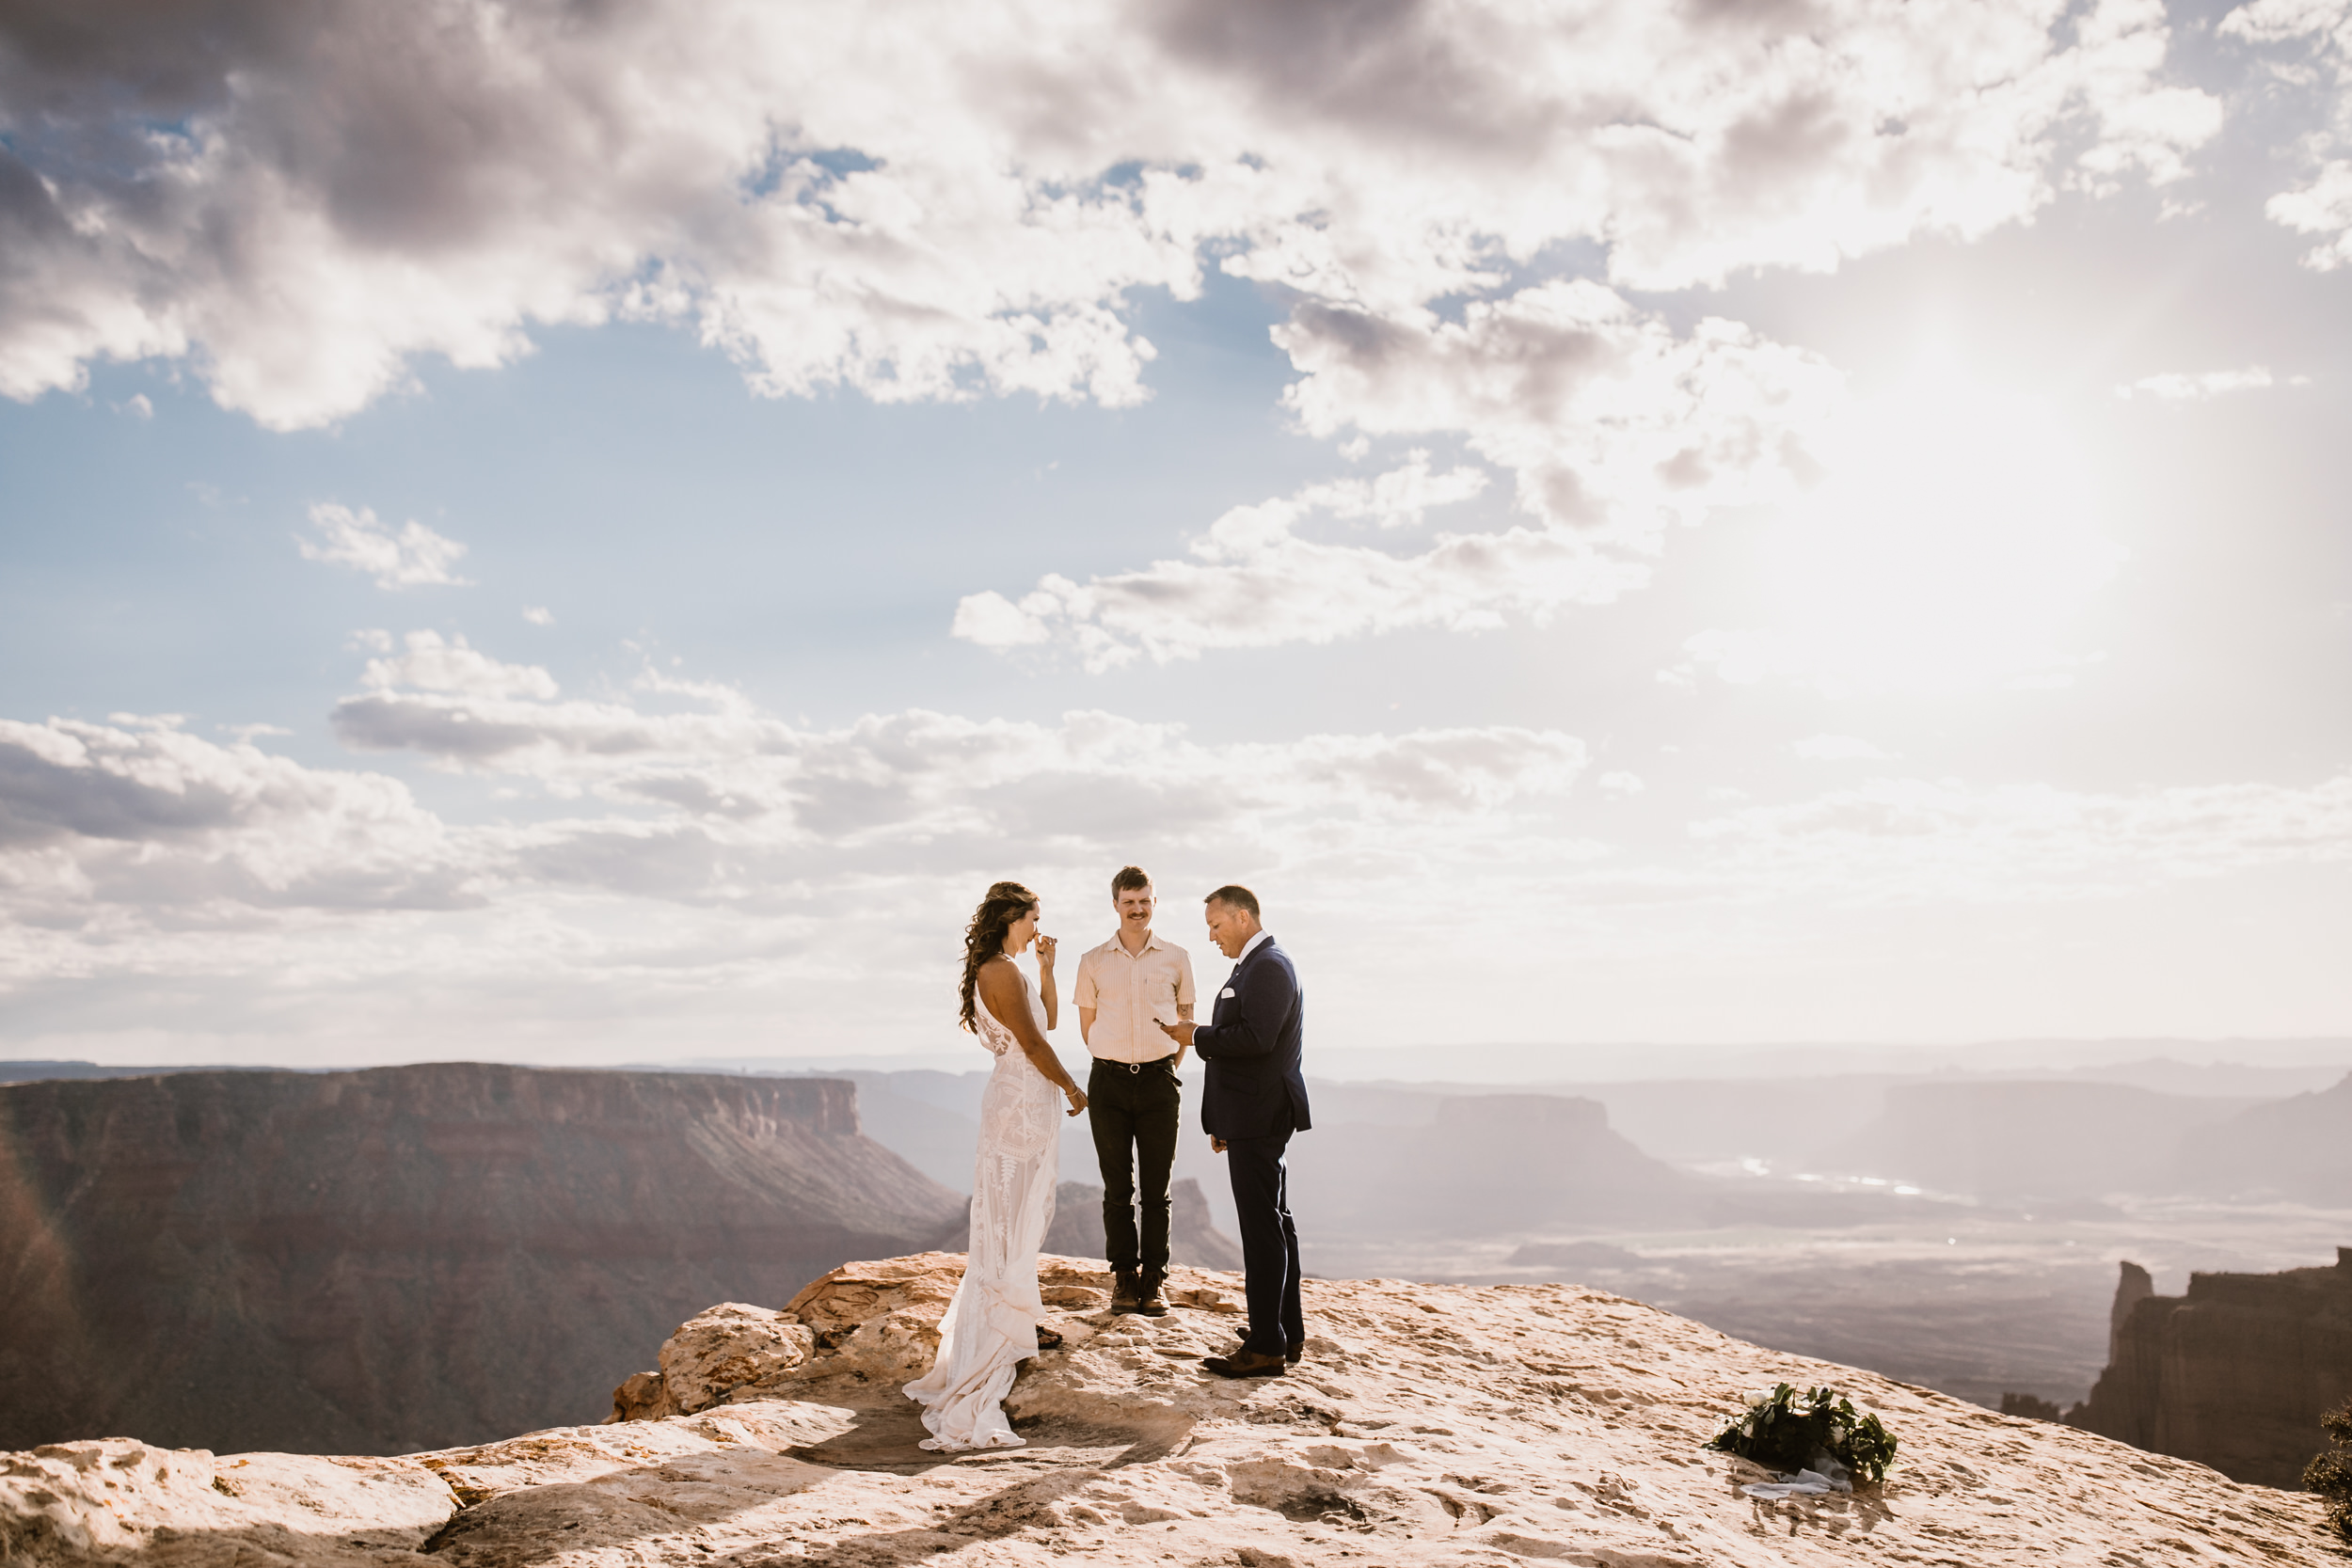 Hearnes-Elopement-Photography-Moab-Adventure-Jeep-Wedding-Photographer-2.jpg